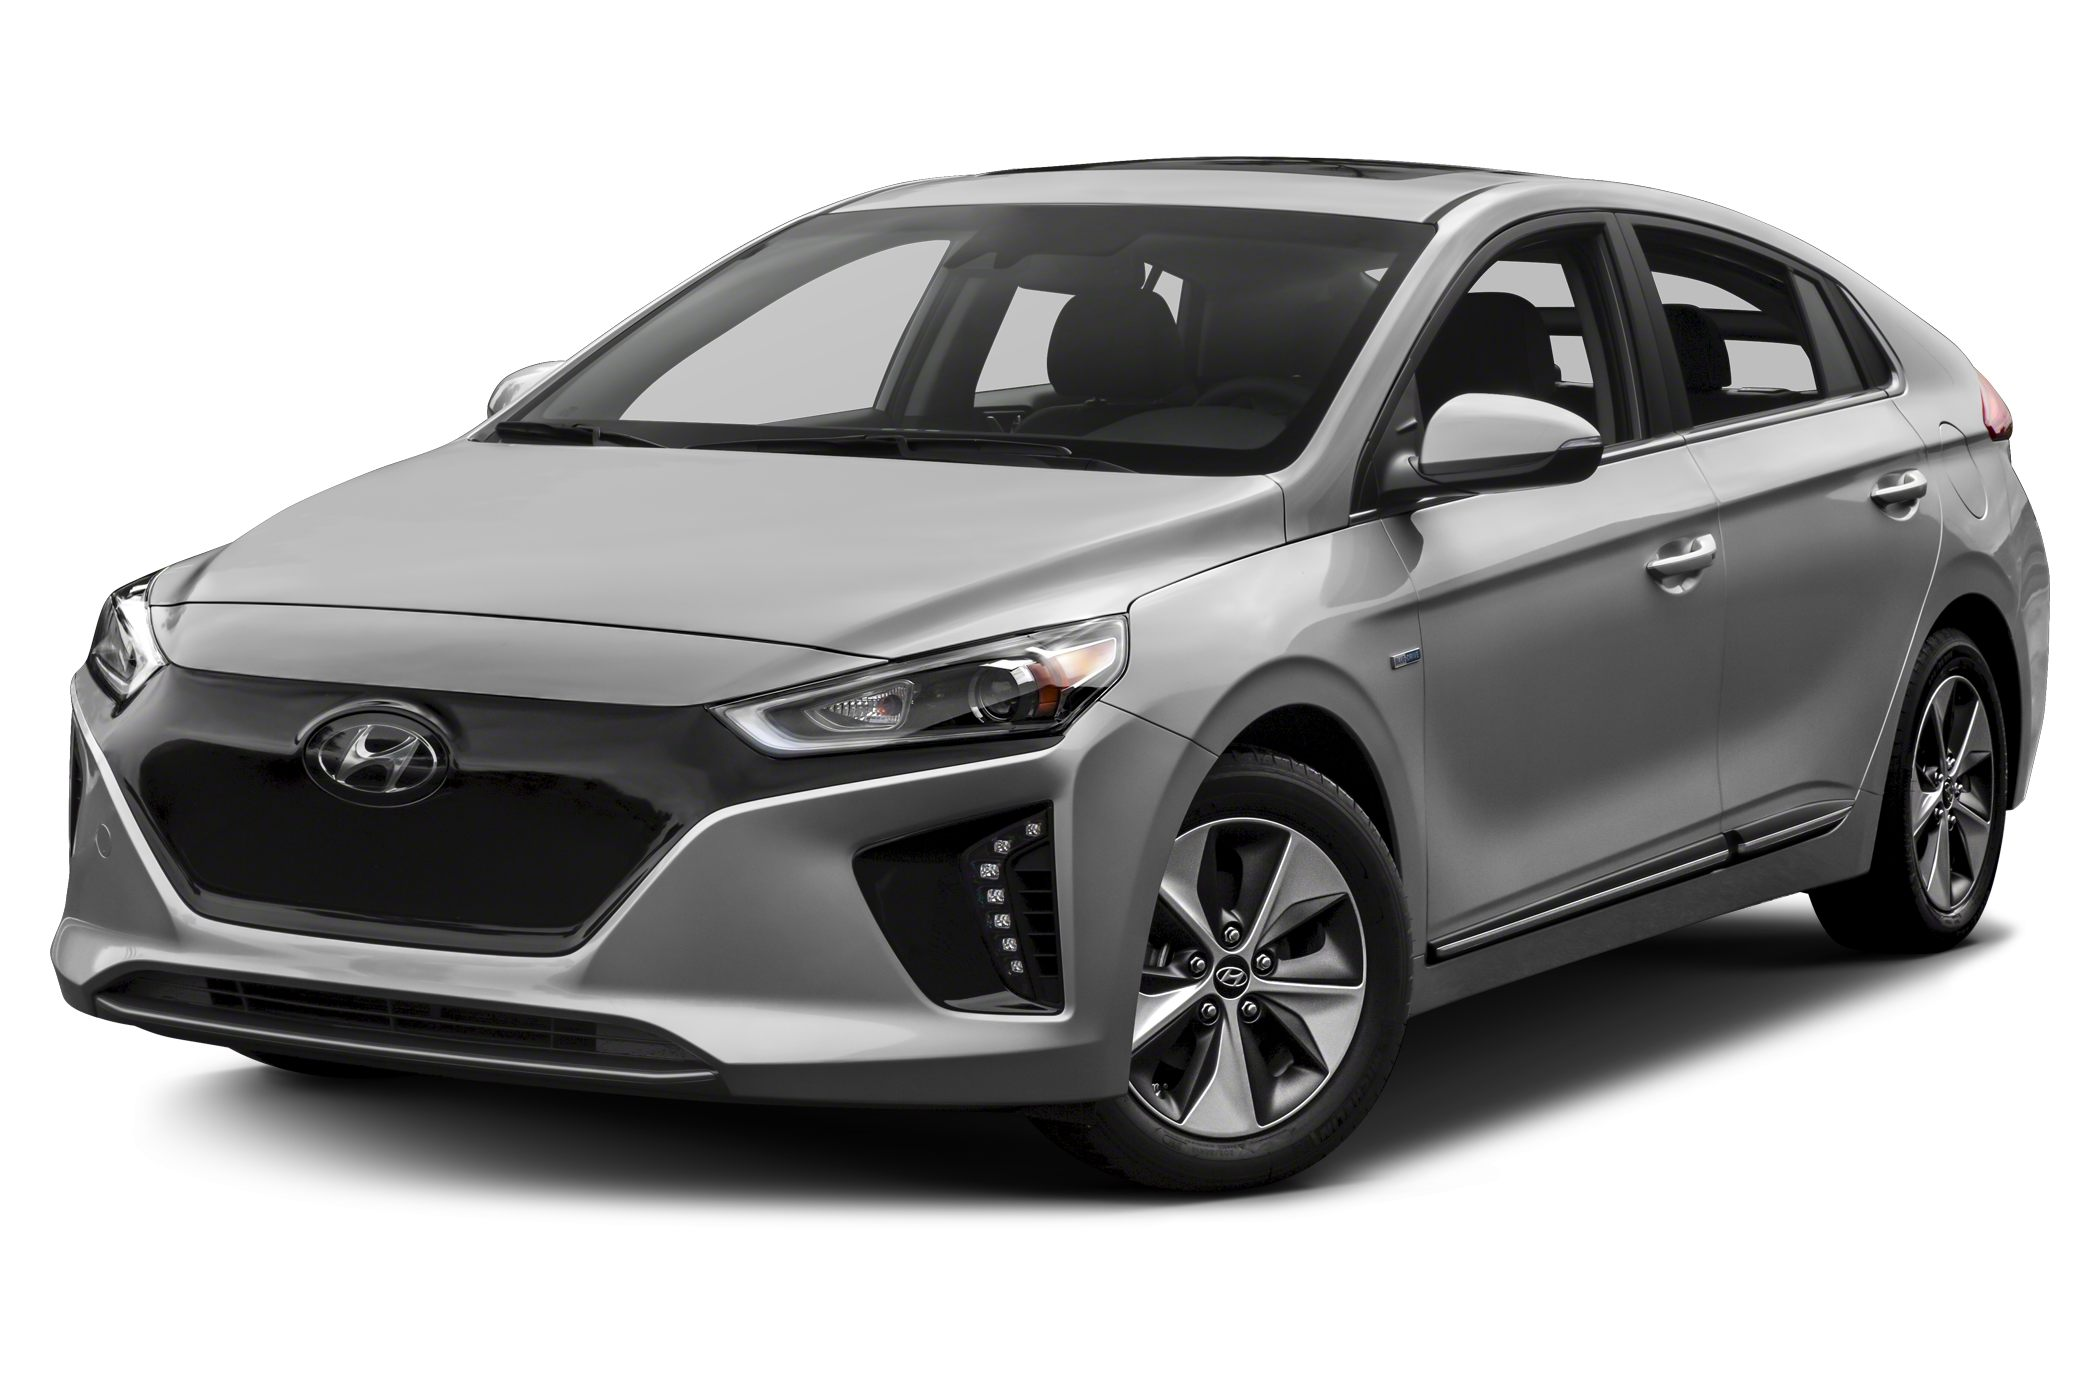 Hyundai Canada Incentives for the new 2021 Hyundai Ioniq EV Fully Electric Vehicle in Milton, Toronto, and the GTA